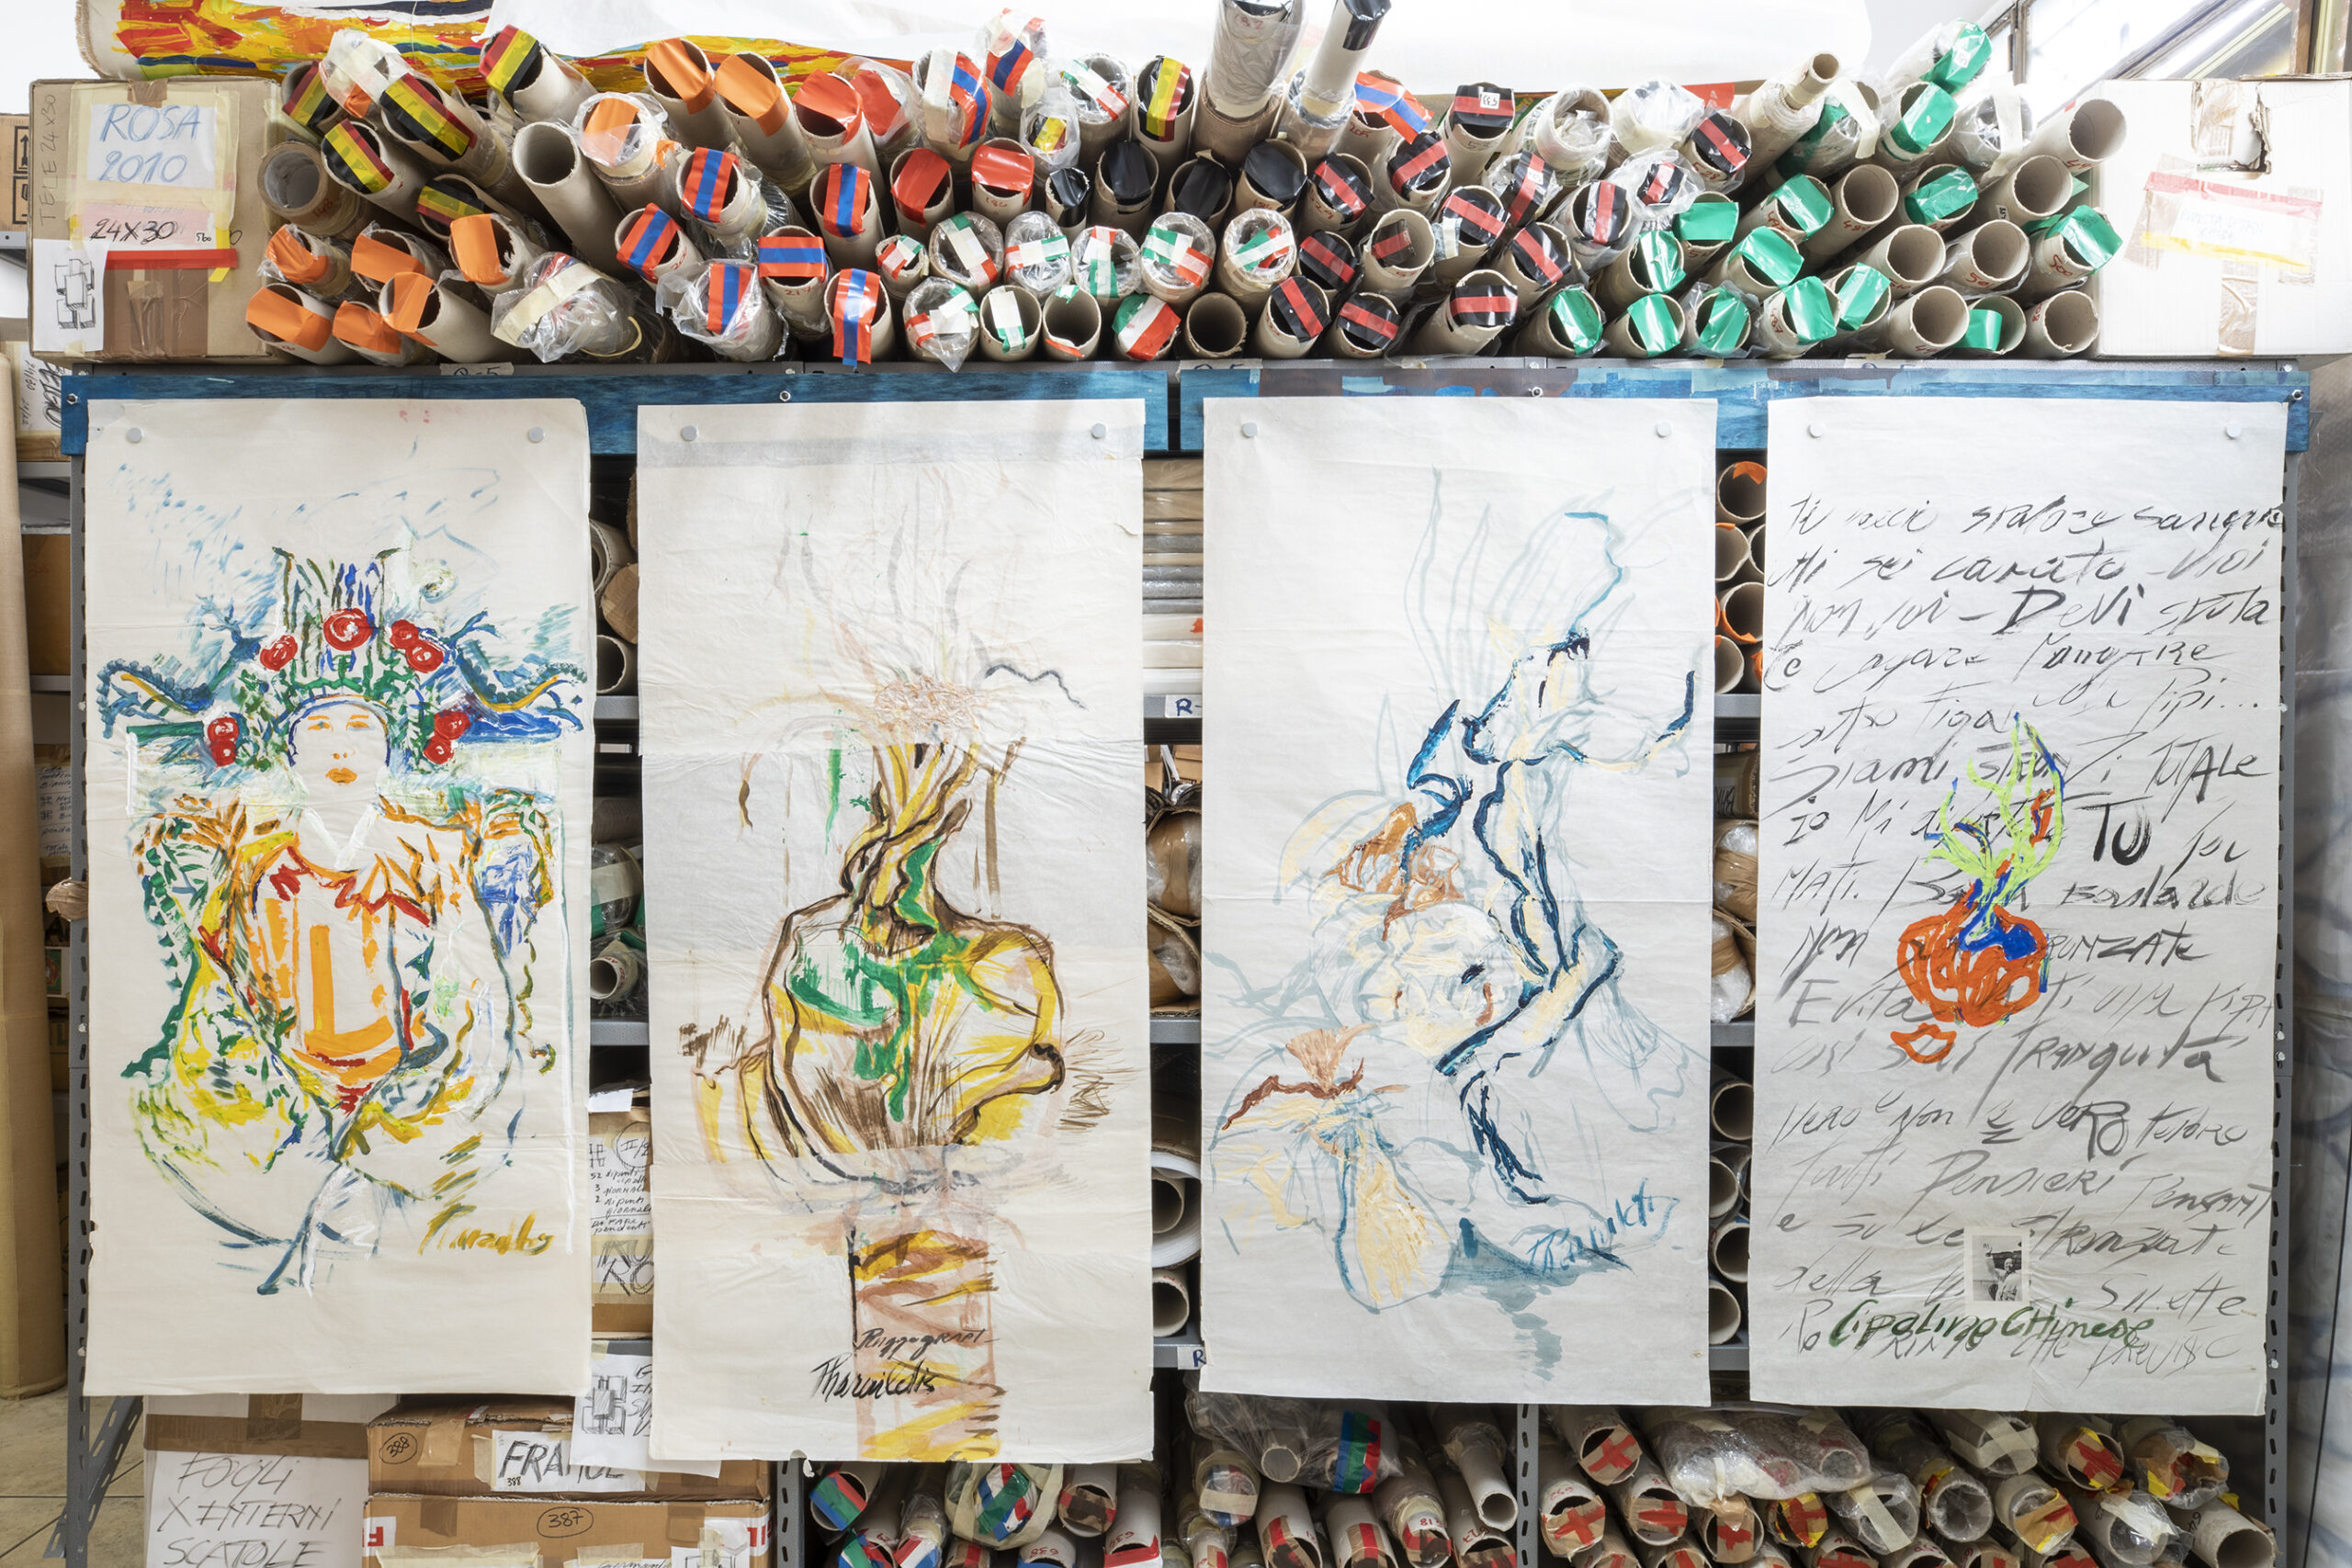 Installation view of China's series (1996/97), 142 x 68 cm each, gouache on Chinese paper, inv. PH441CDEF